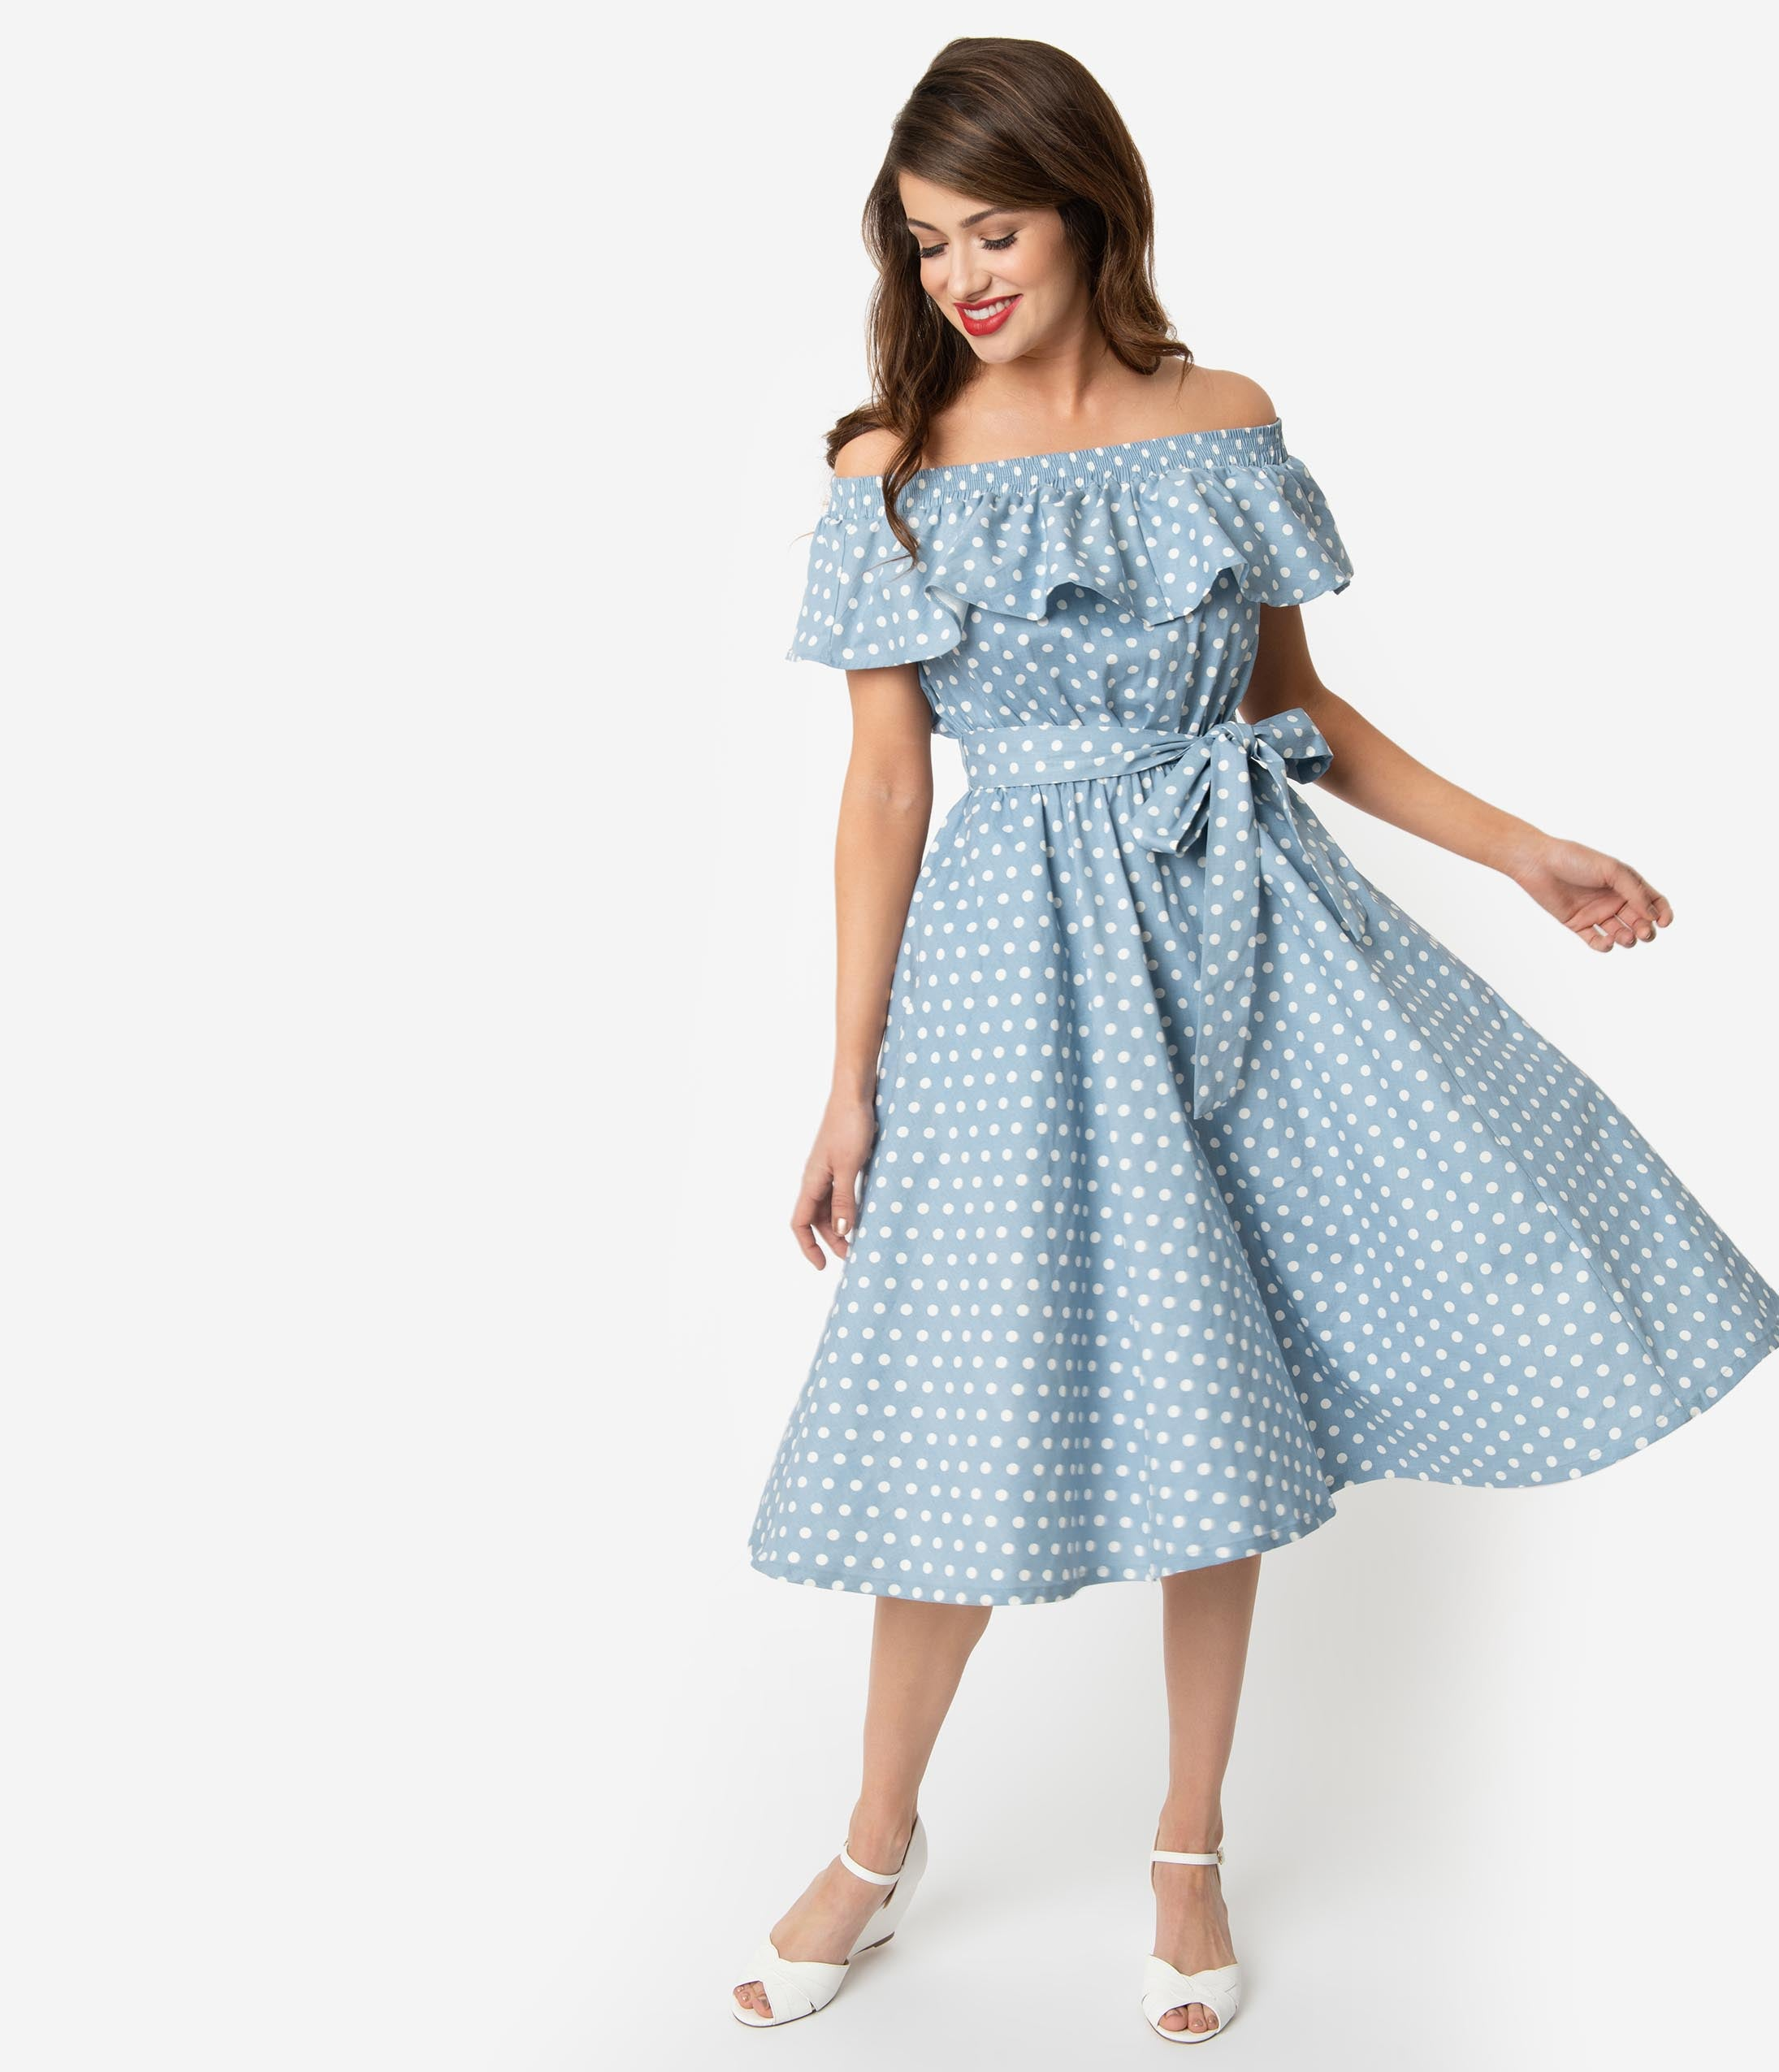 98e5aa3b5 Unique Vintage Dusty Blue   White Polka Dot Off Shoulder Ruffle Nashville  Swing Dress